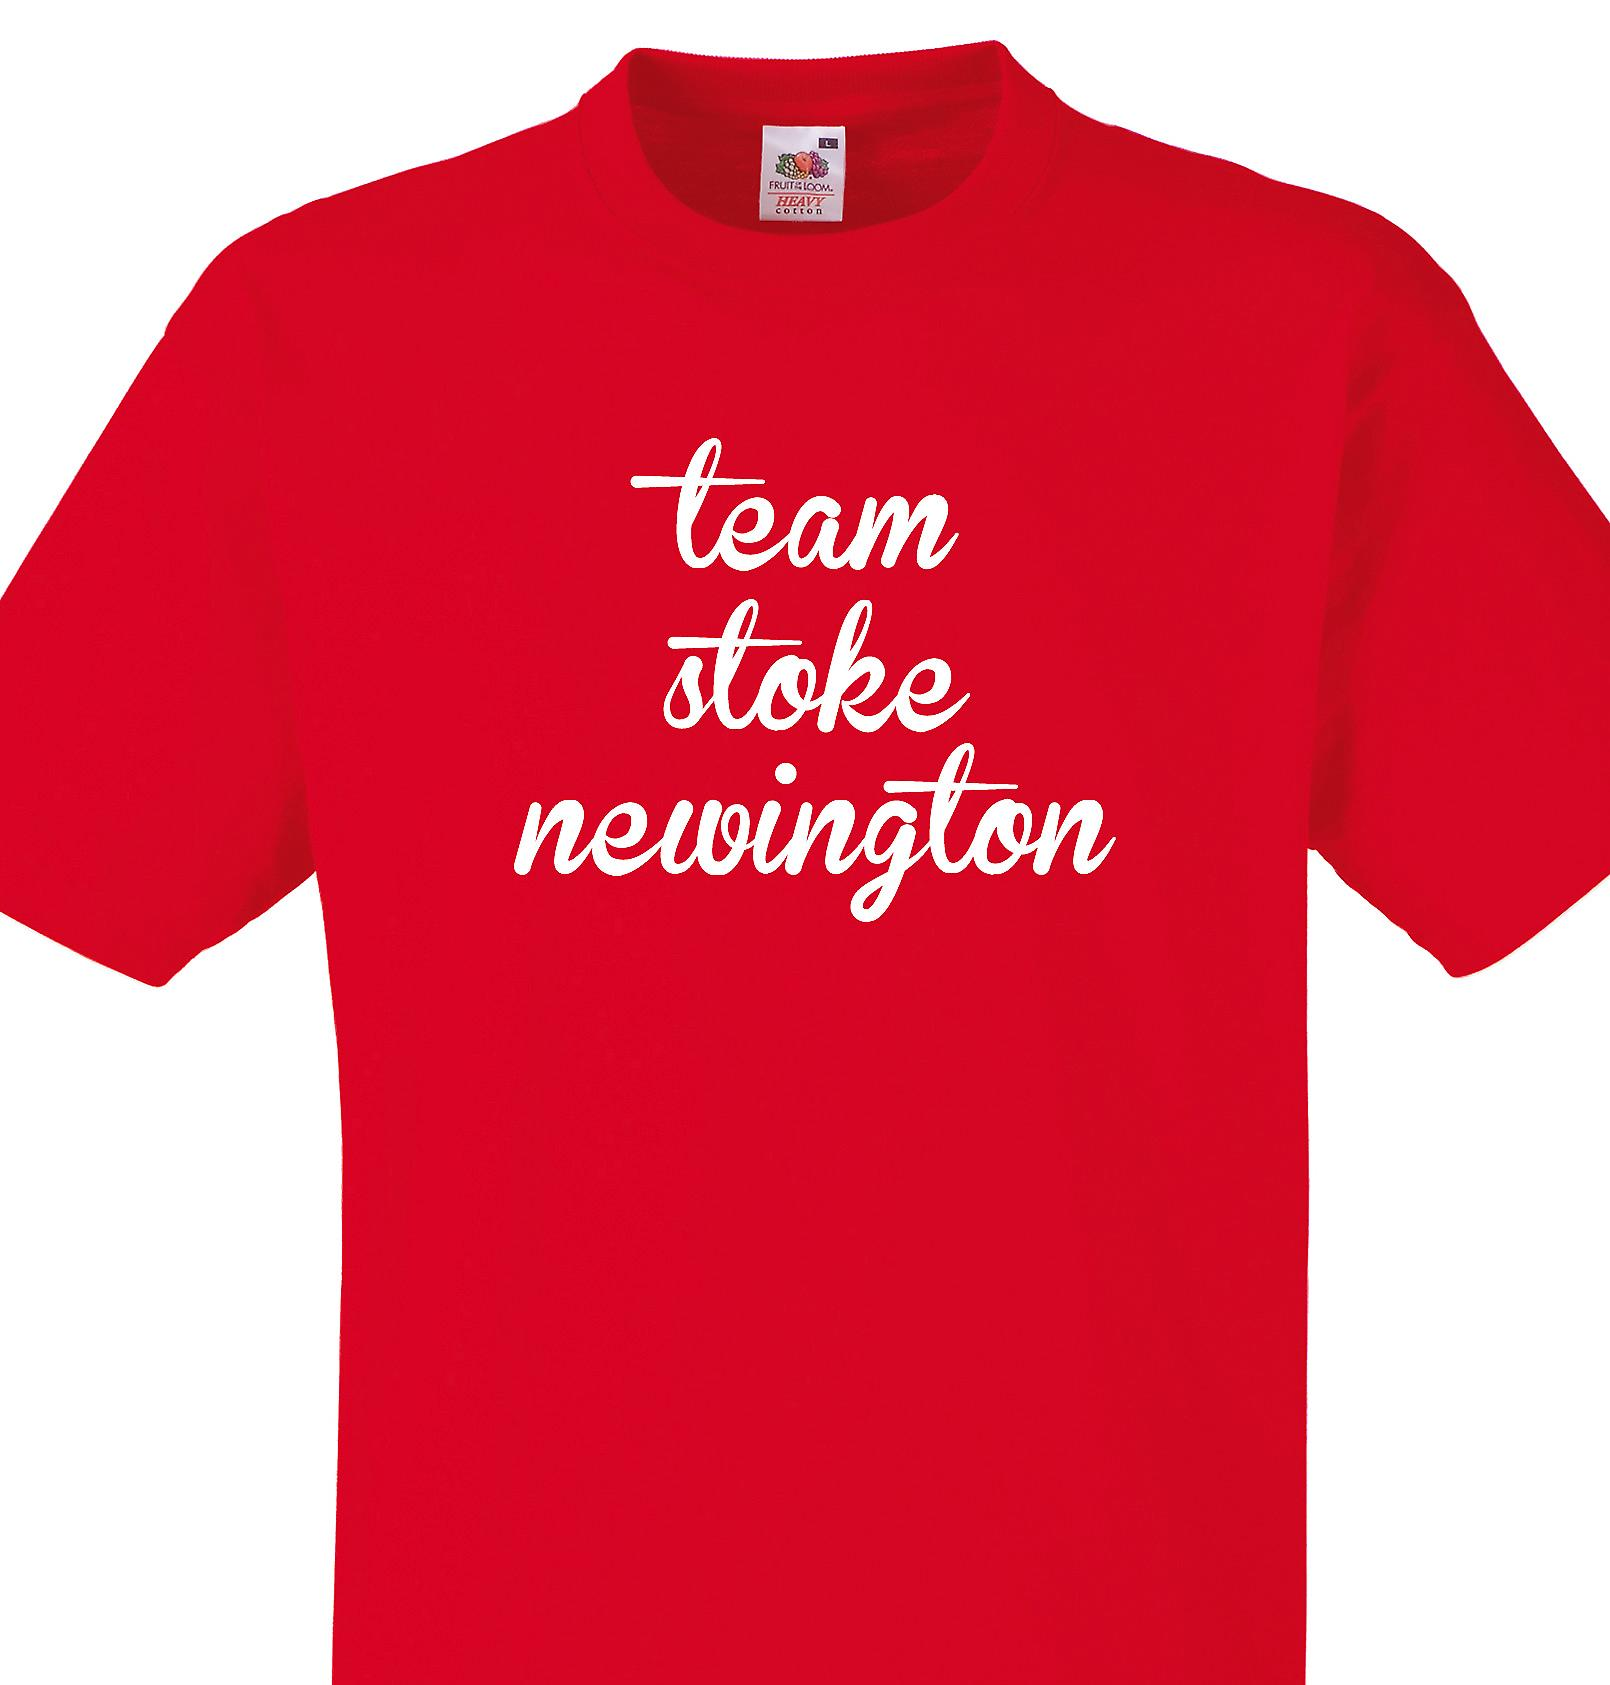 Team Stoke newington Red T shirt